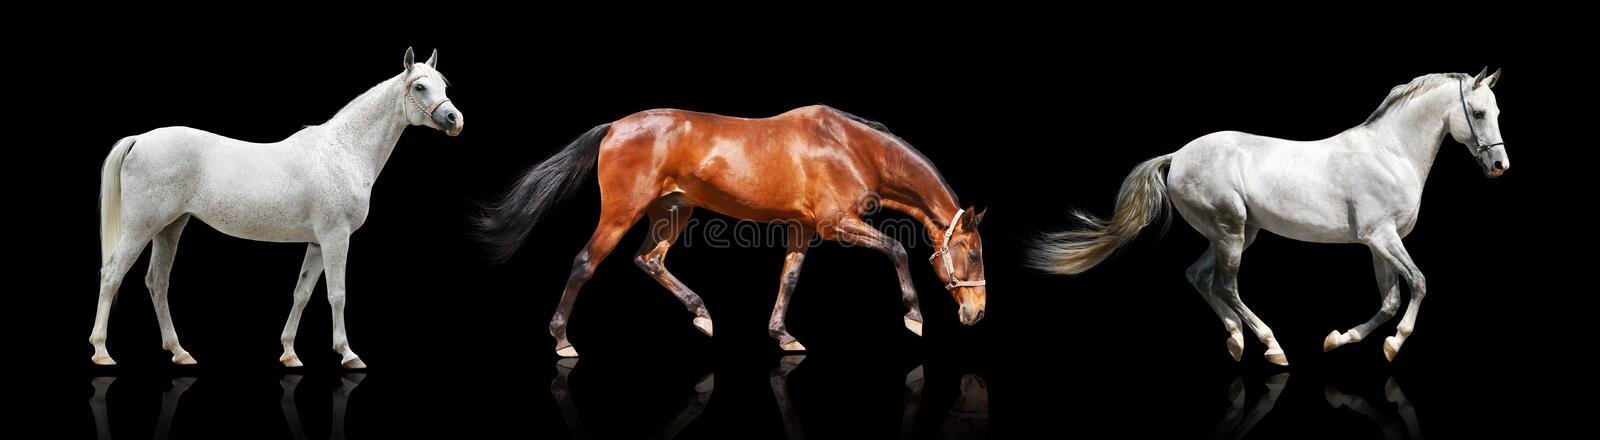 Download Three horses isolated stock image. Image of free, gray - 10982293